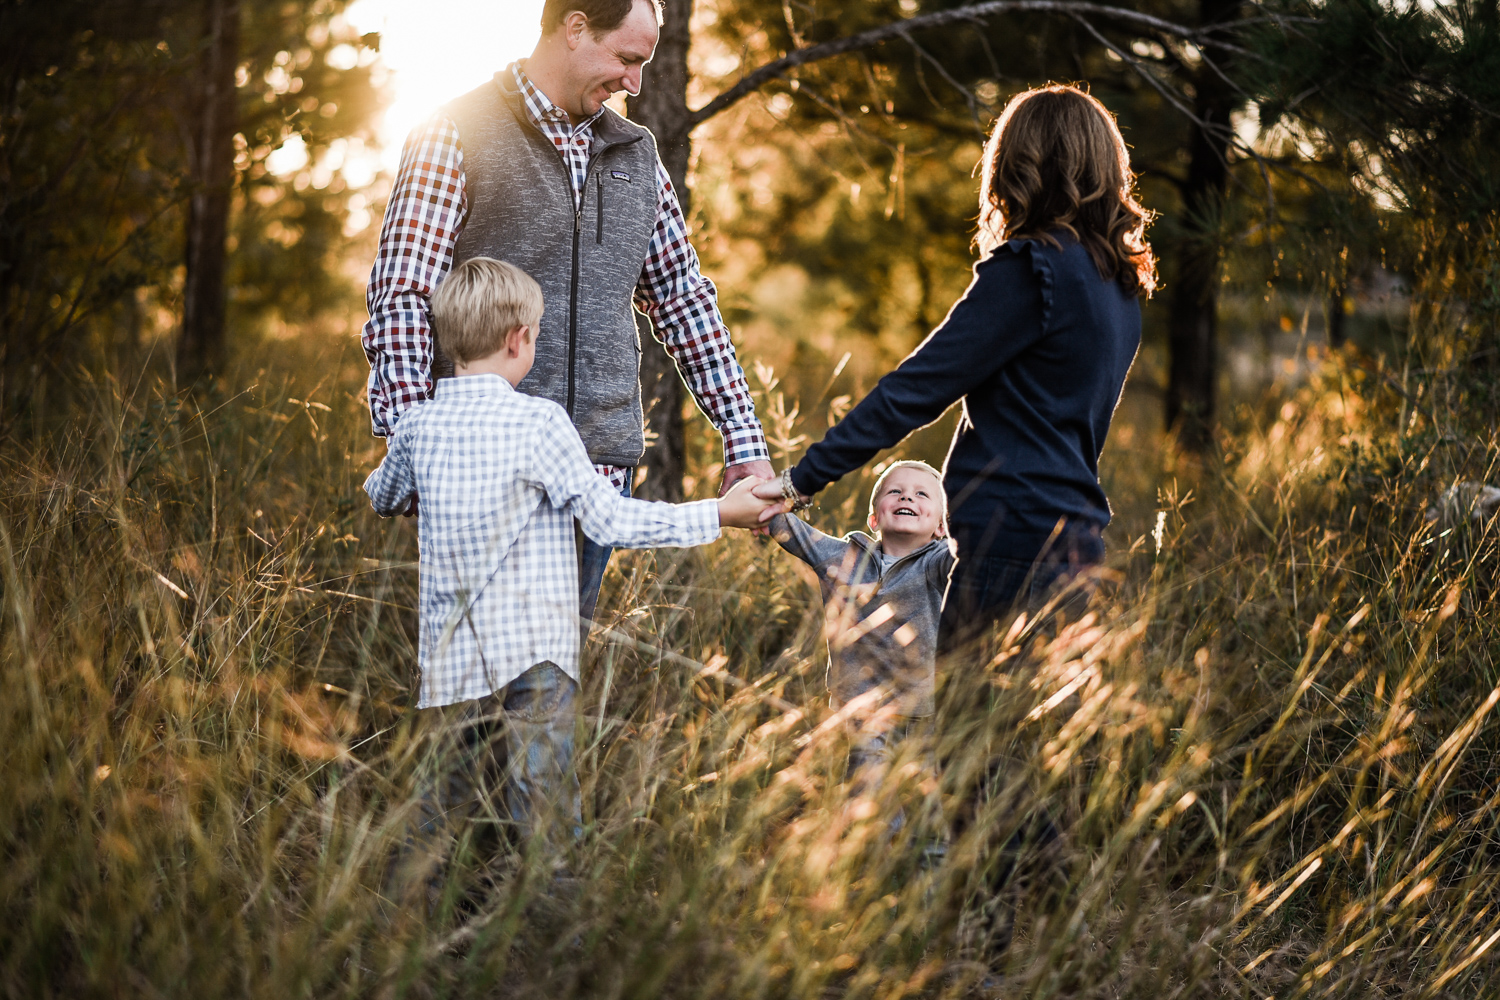 Sweet Nest Photography - Katy Texas - Family Lifestyle Photography Session.jpg